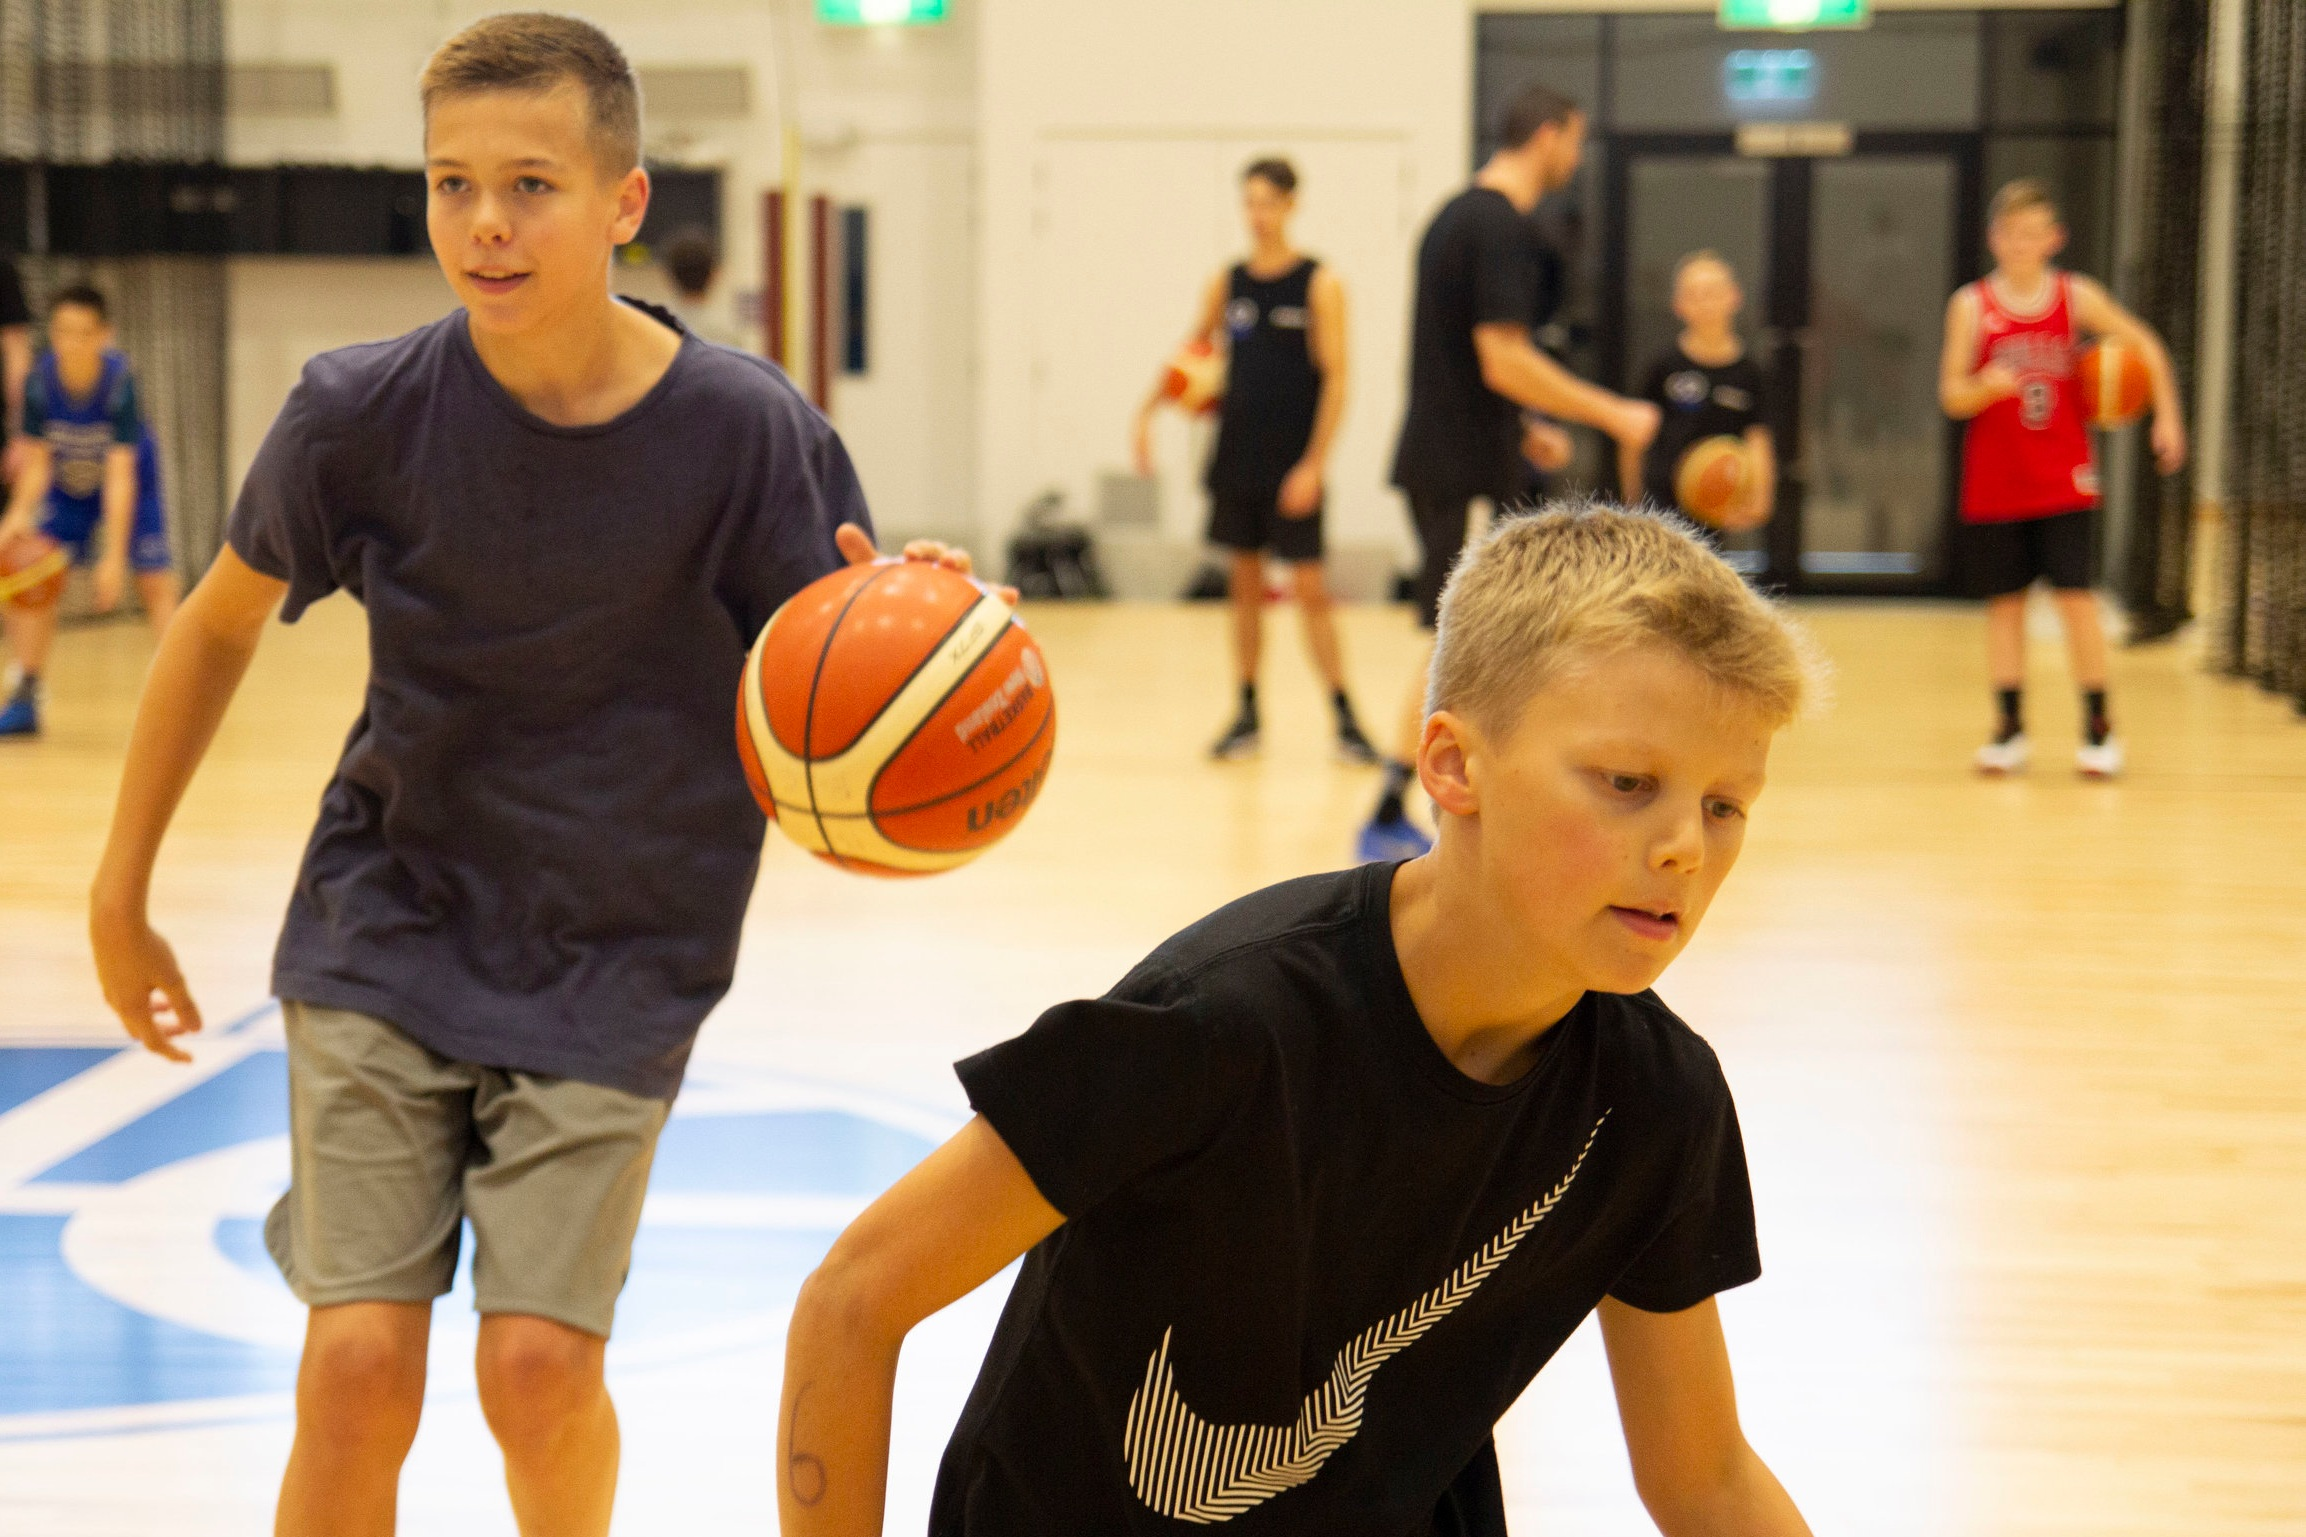 Experience Days - tailored specifically for school experience days for years 7-10